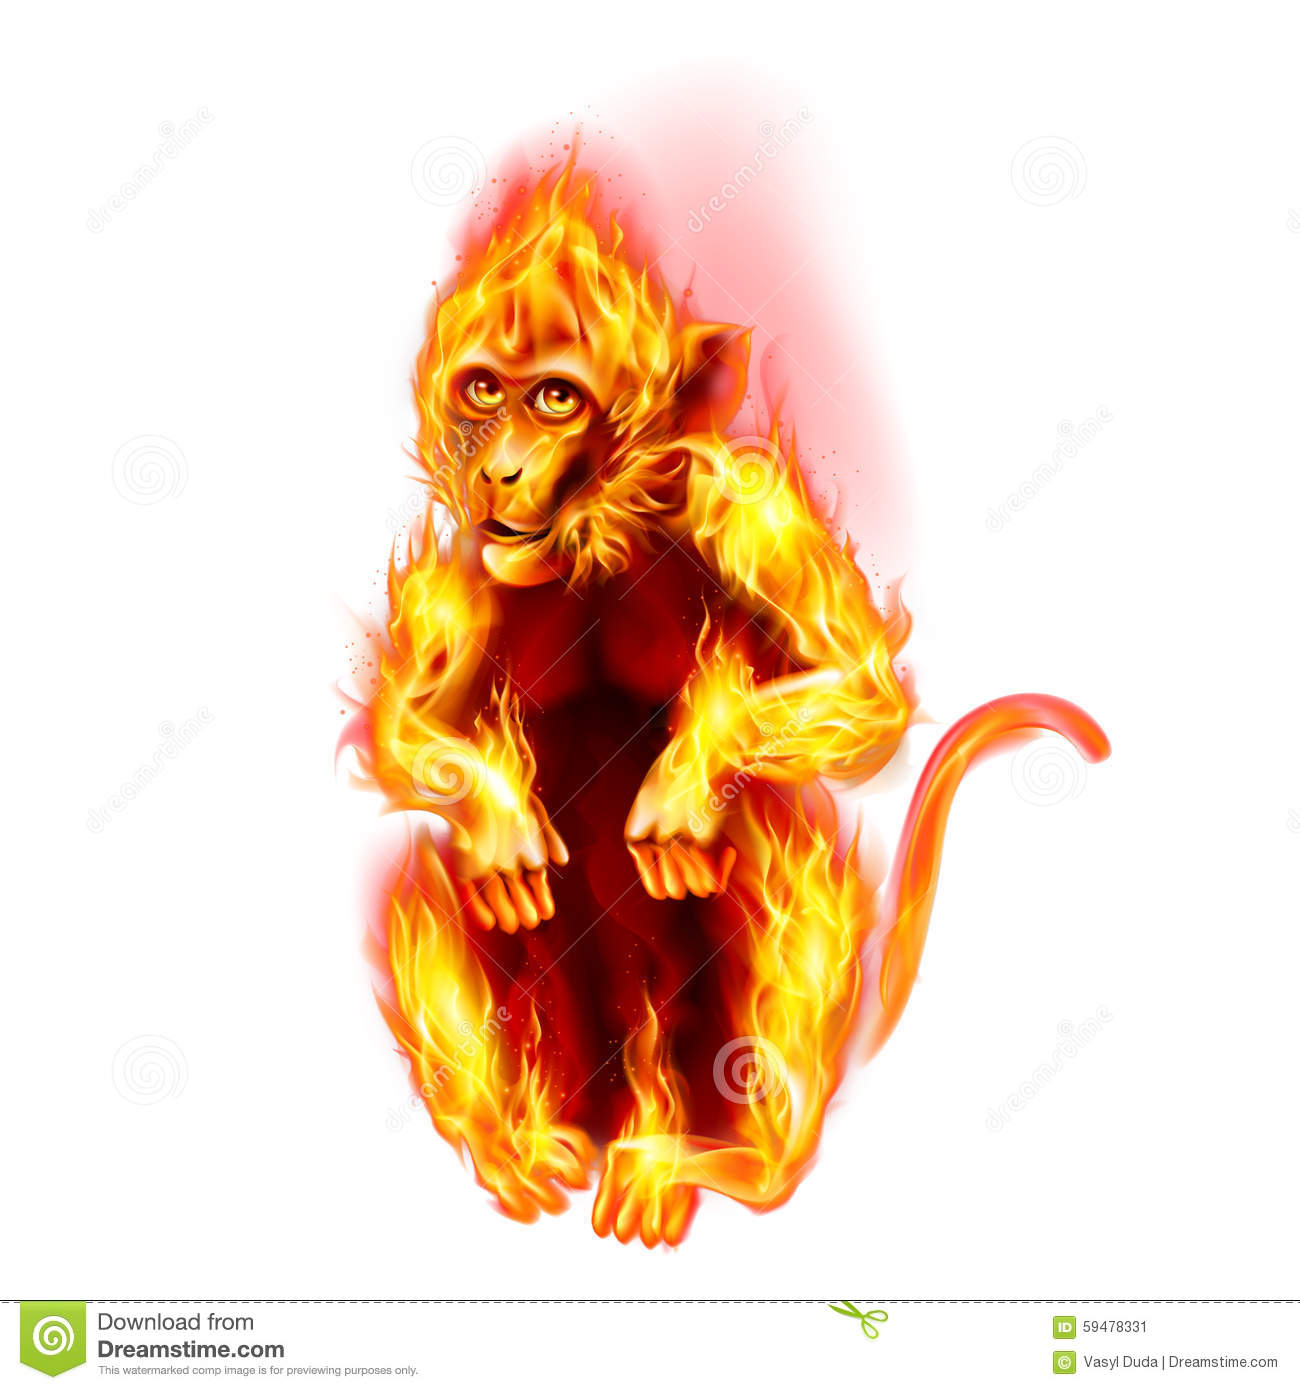 Happy New Year 3d Wallpaper Download Fire Monkey Stock Illustration Image 59478331